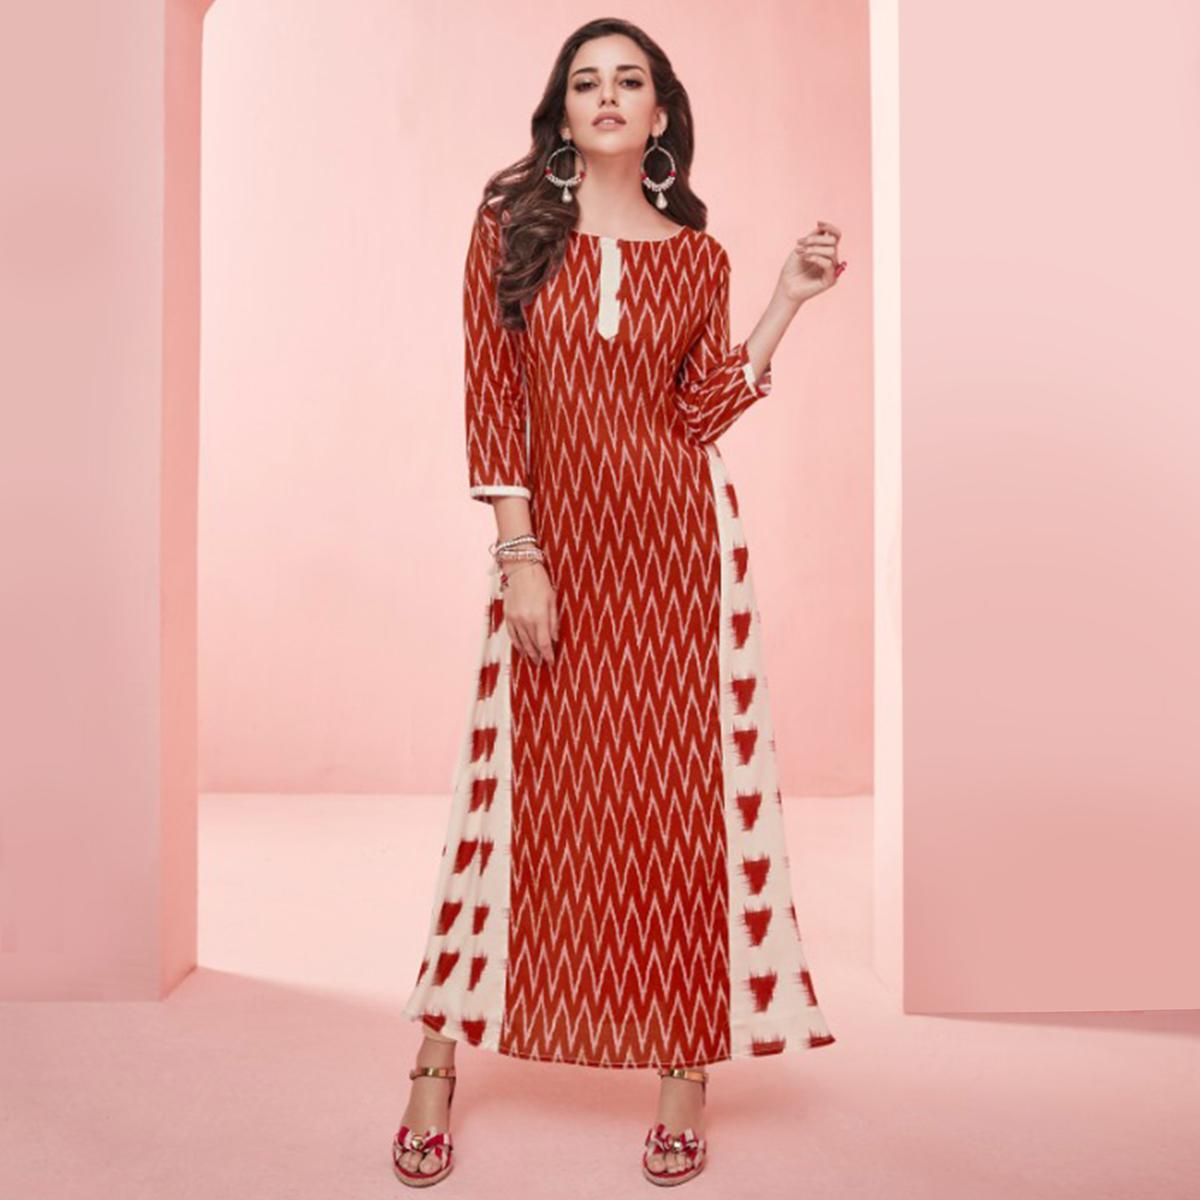 993c684d2d Buy Impressive Red Colored Partywear Printed Rayon Long Kurti for womens  online India, Best Prices, Reviews - Peachmode